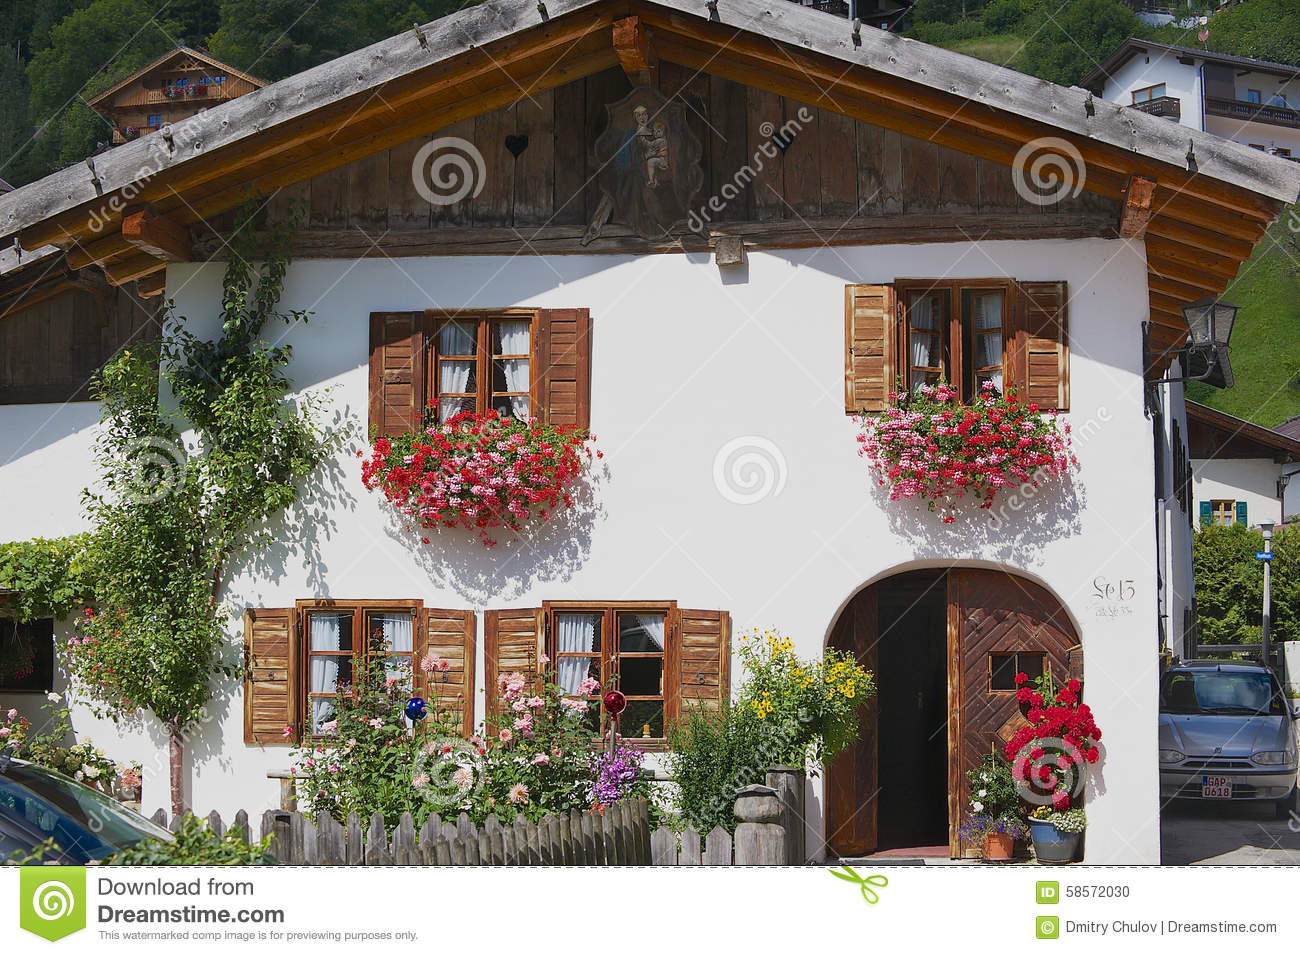 MITTENWALD, GERMANY - SEPTEMBER 01, 2010: Exterior of a traditional ...